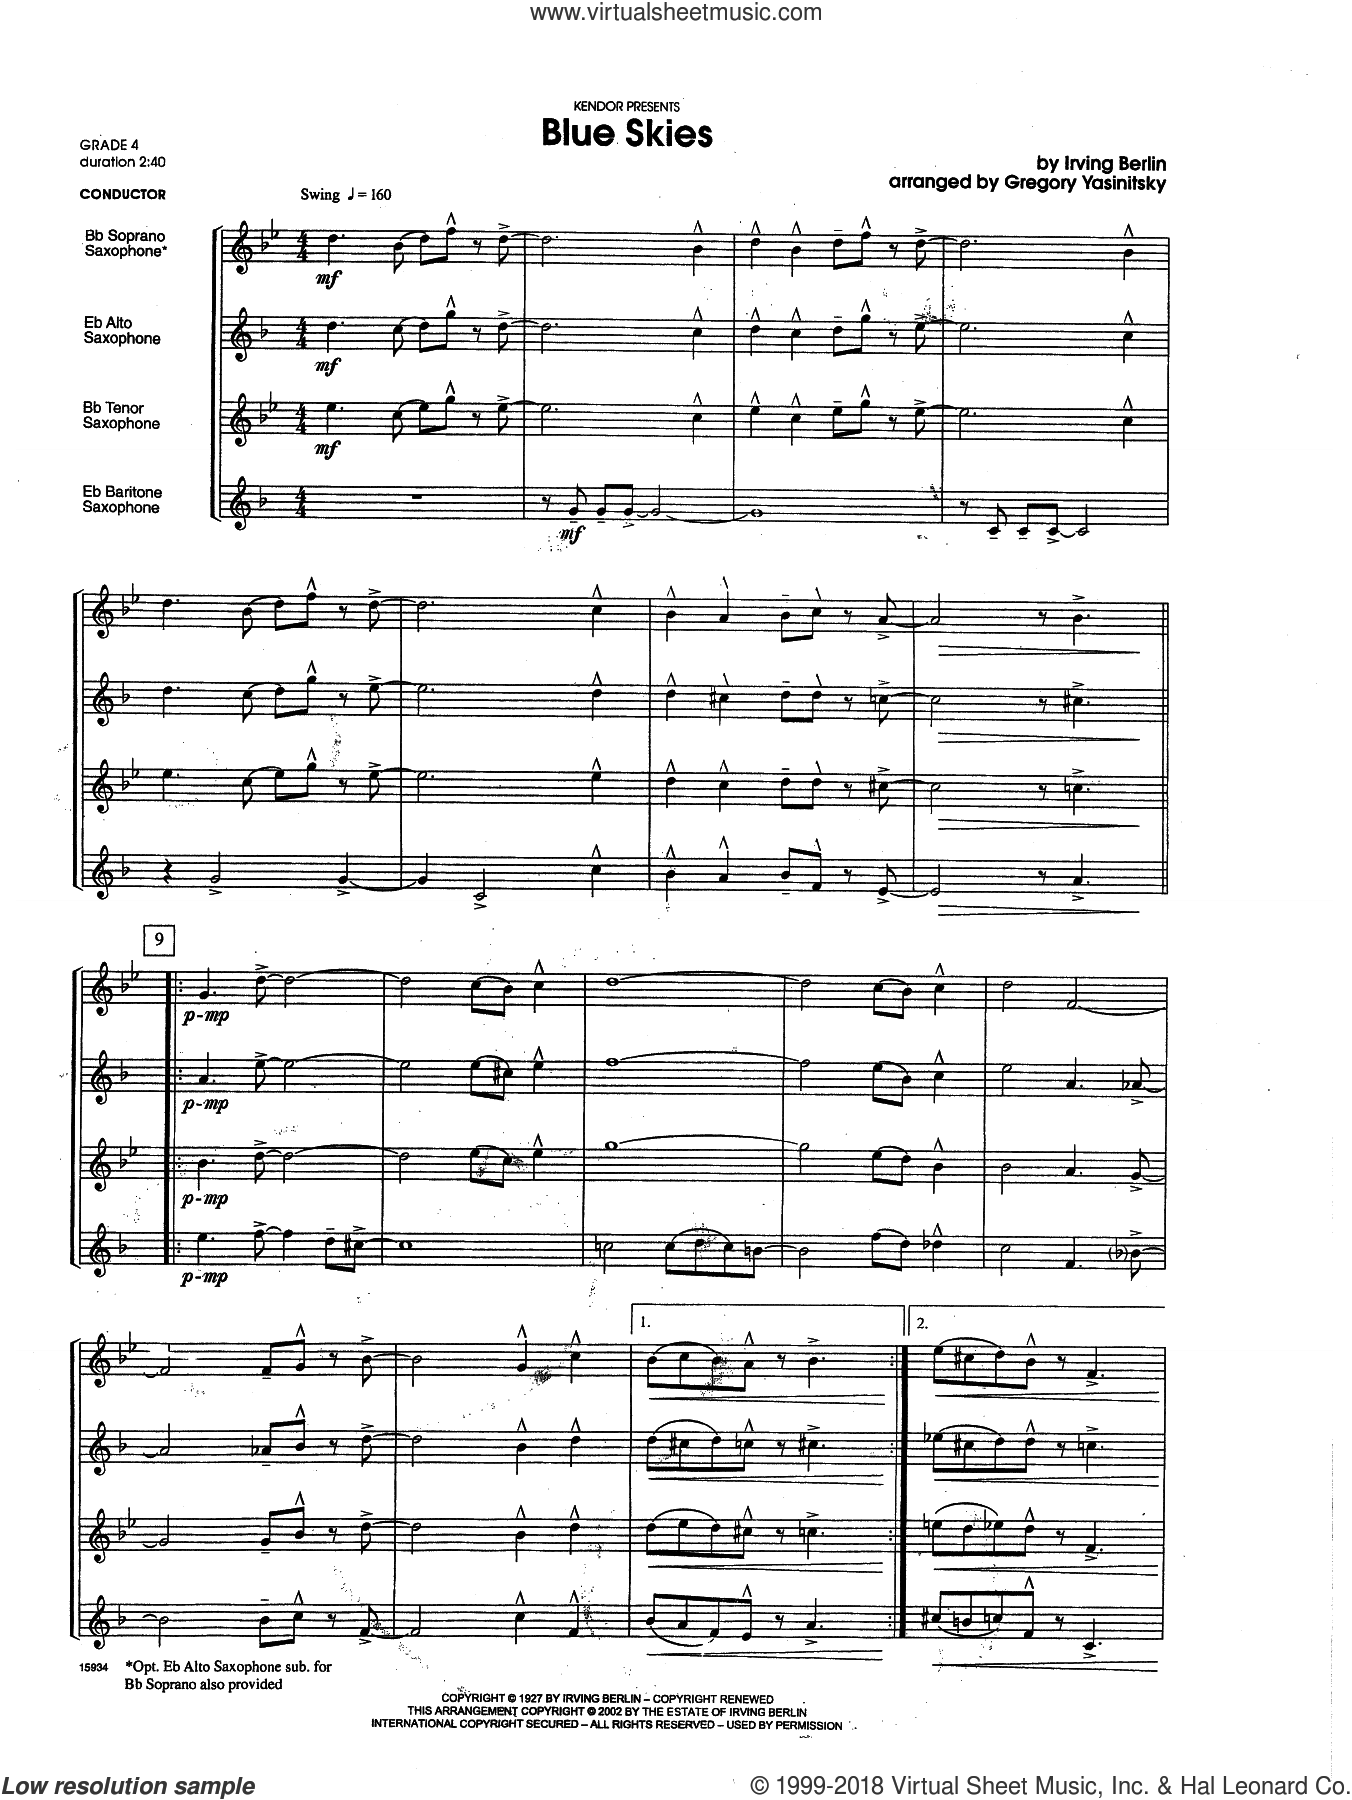 Blue Skies (COMPLETE) sheet music for saxophone quartet by Irving Berlin and Gregory Yasinitsky, intermediate skill level